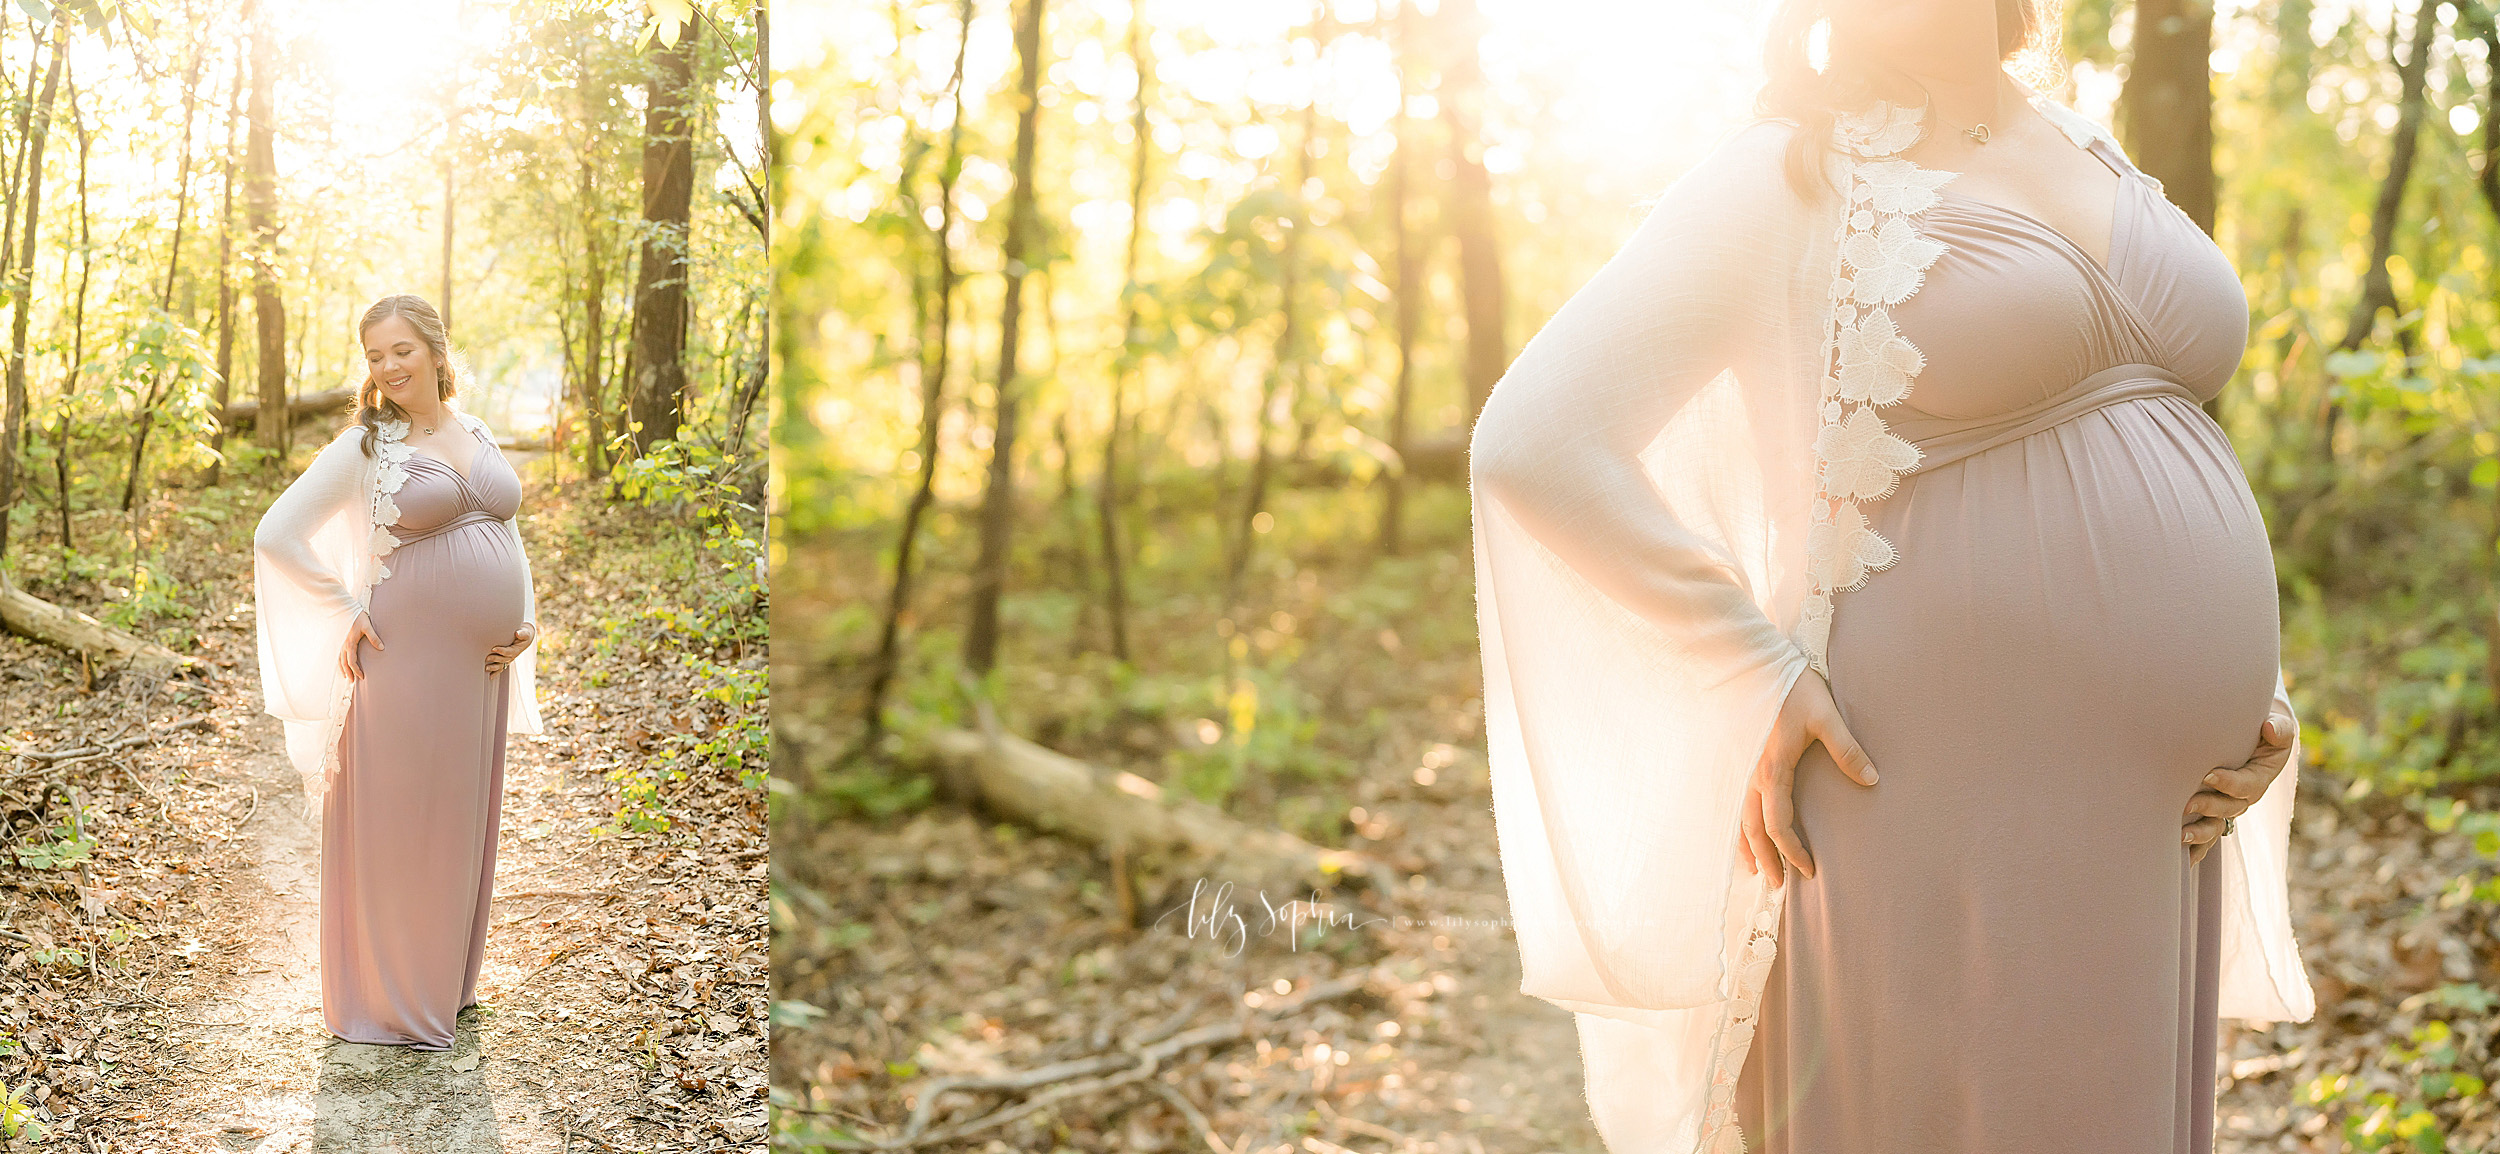 atlanta-brookhaven-decatur-candler-park-sandy-springs-buckhead-virginia-highlands-west-end-decatur-lily-sophia-photography-family-big-brother-expecting-newborn-baby-girl-couples-family-maternity-outdoor-session_1593.jpg